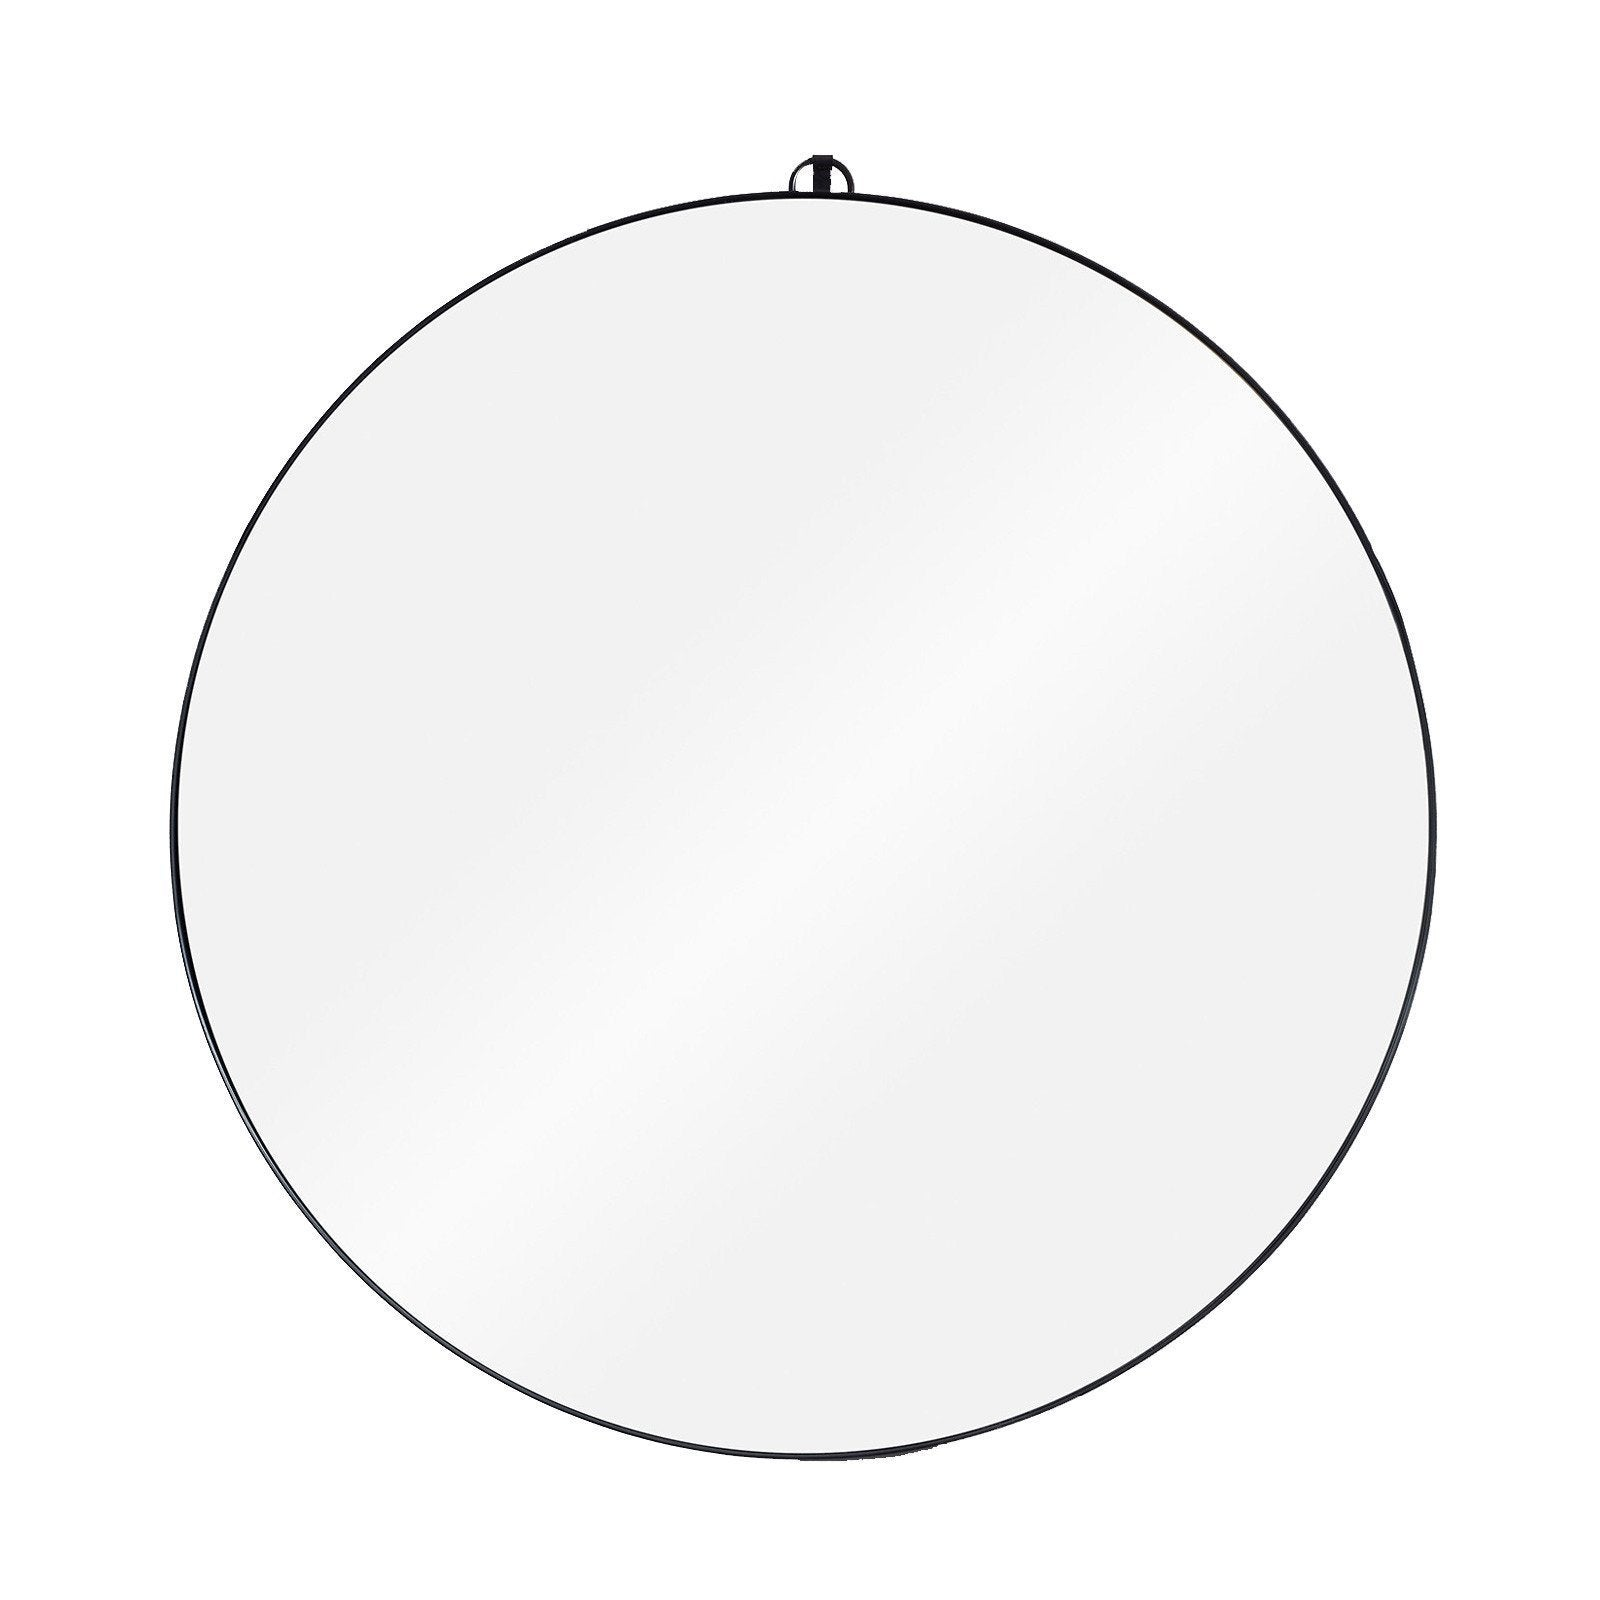 ... Accessories > Wall Mirror - Round Metal Framed Mirror By Consort ...